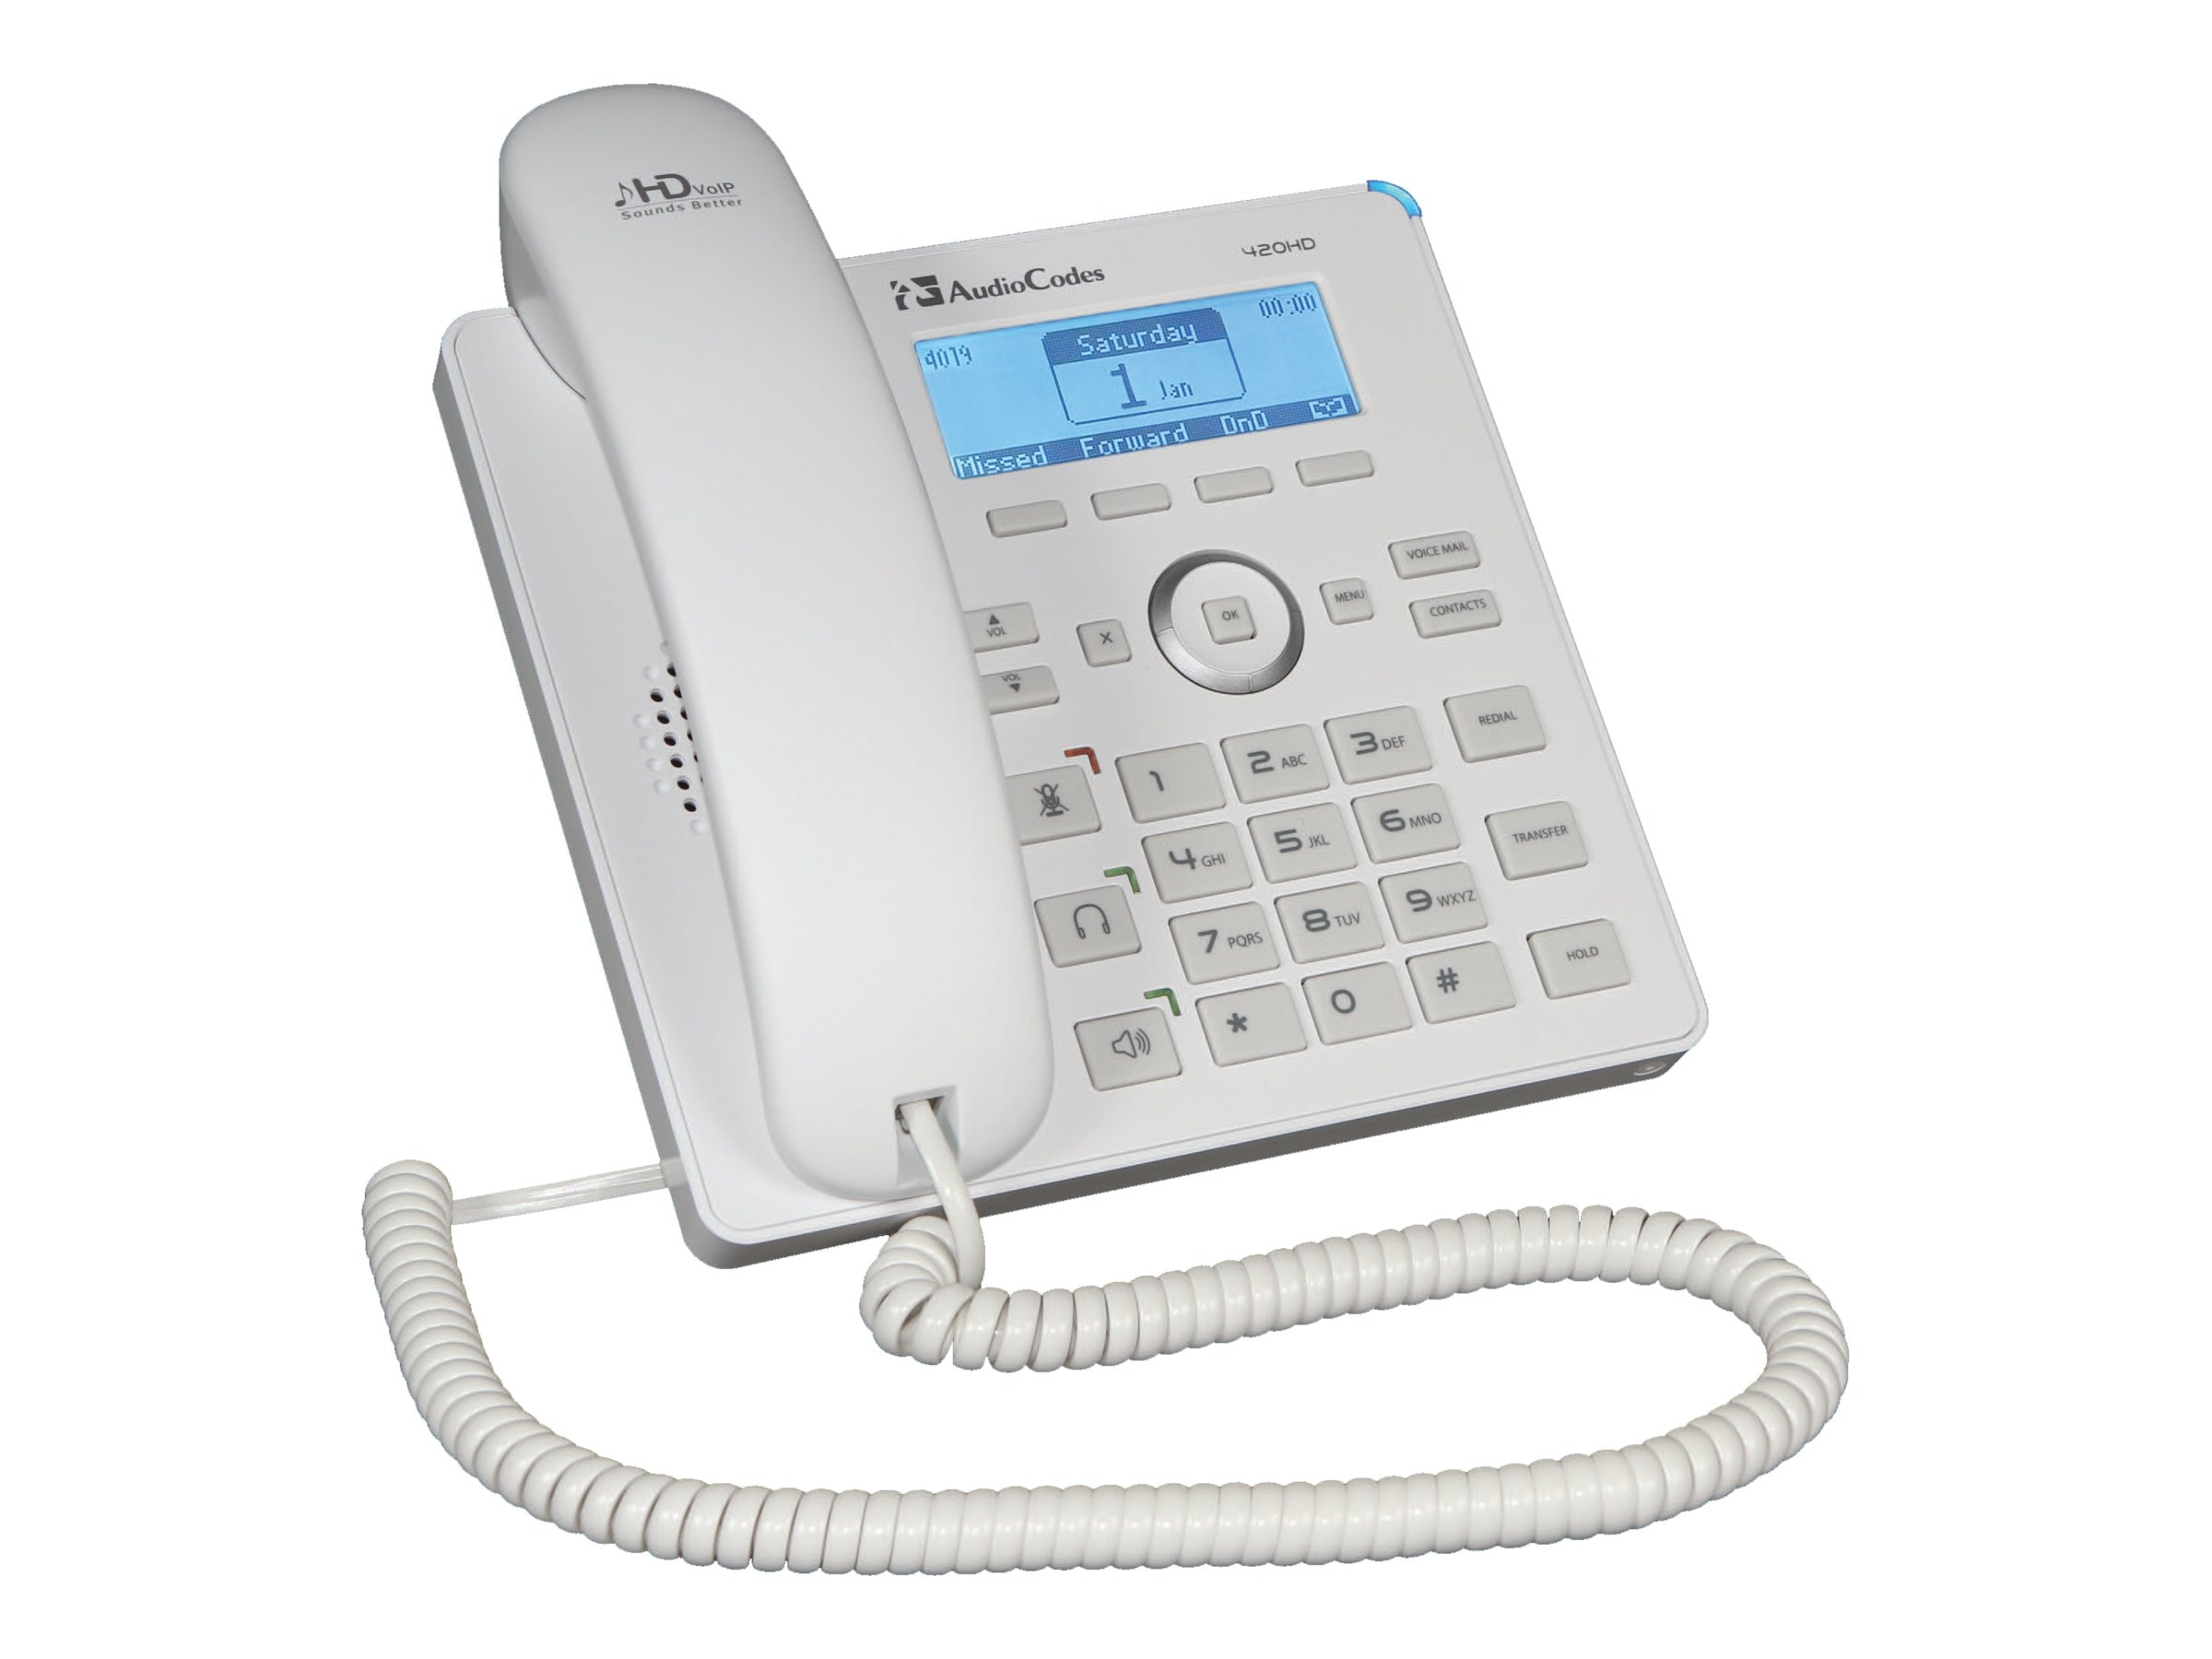 AudioCodes AudioCodes 420HD IP-Phone PoE, White, 2 lines, IP420HDEW